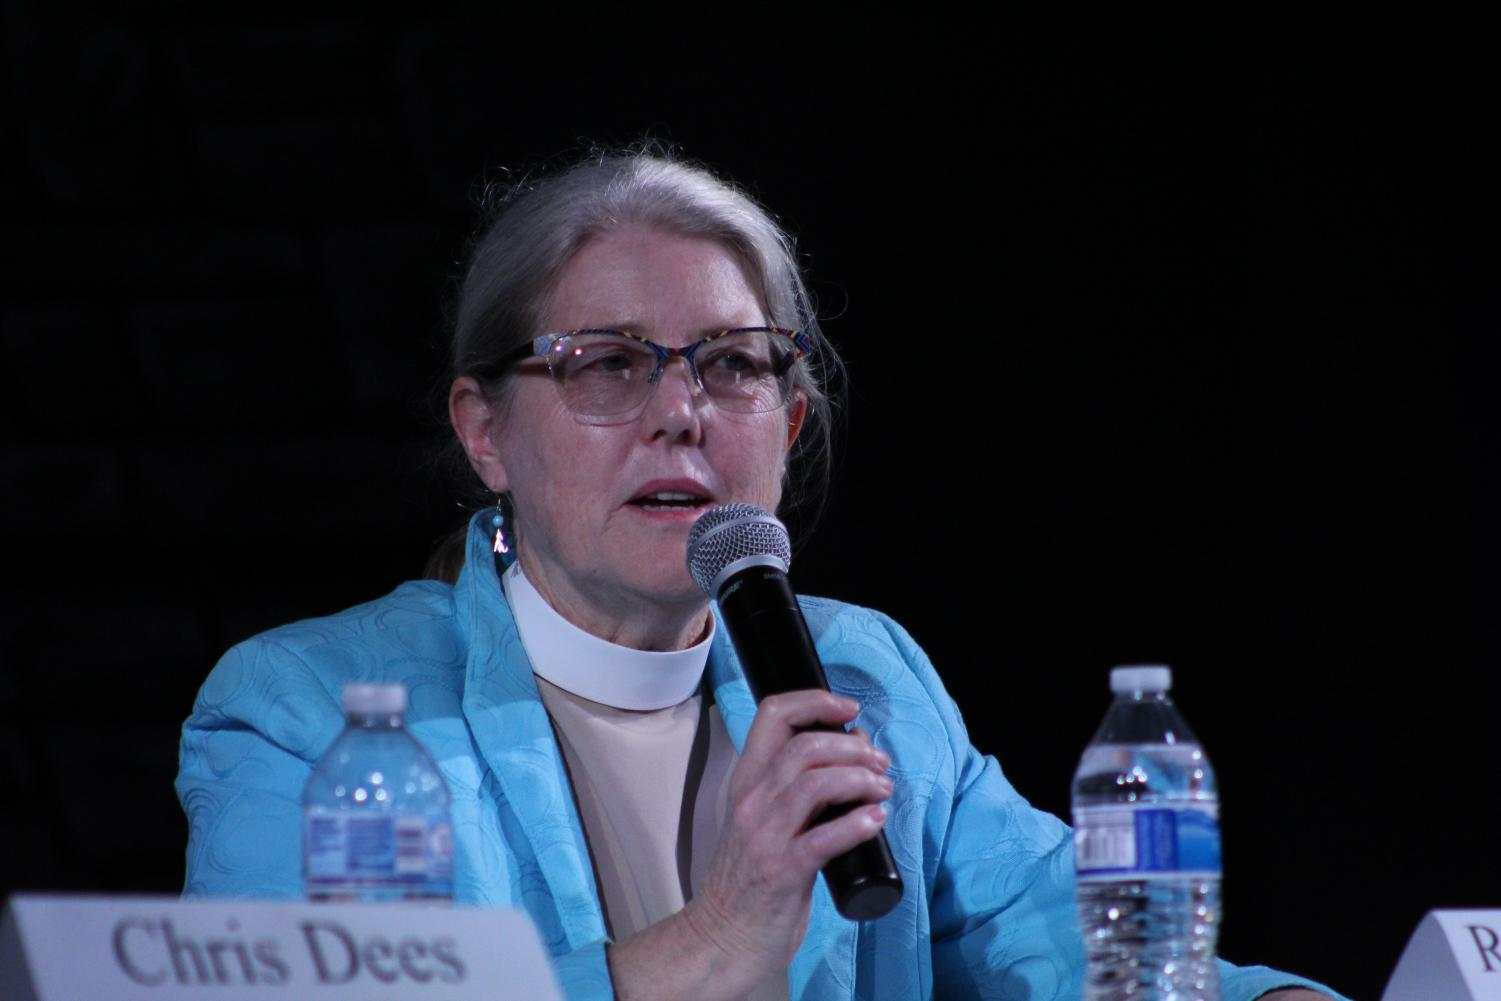 Reverend Anne Harris represents the Episcopal Church.